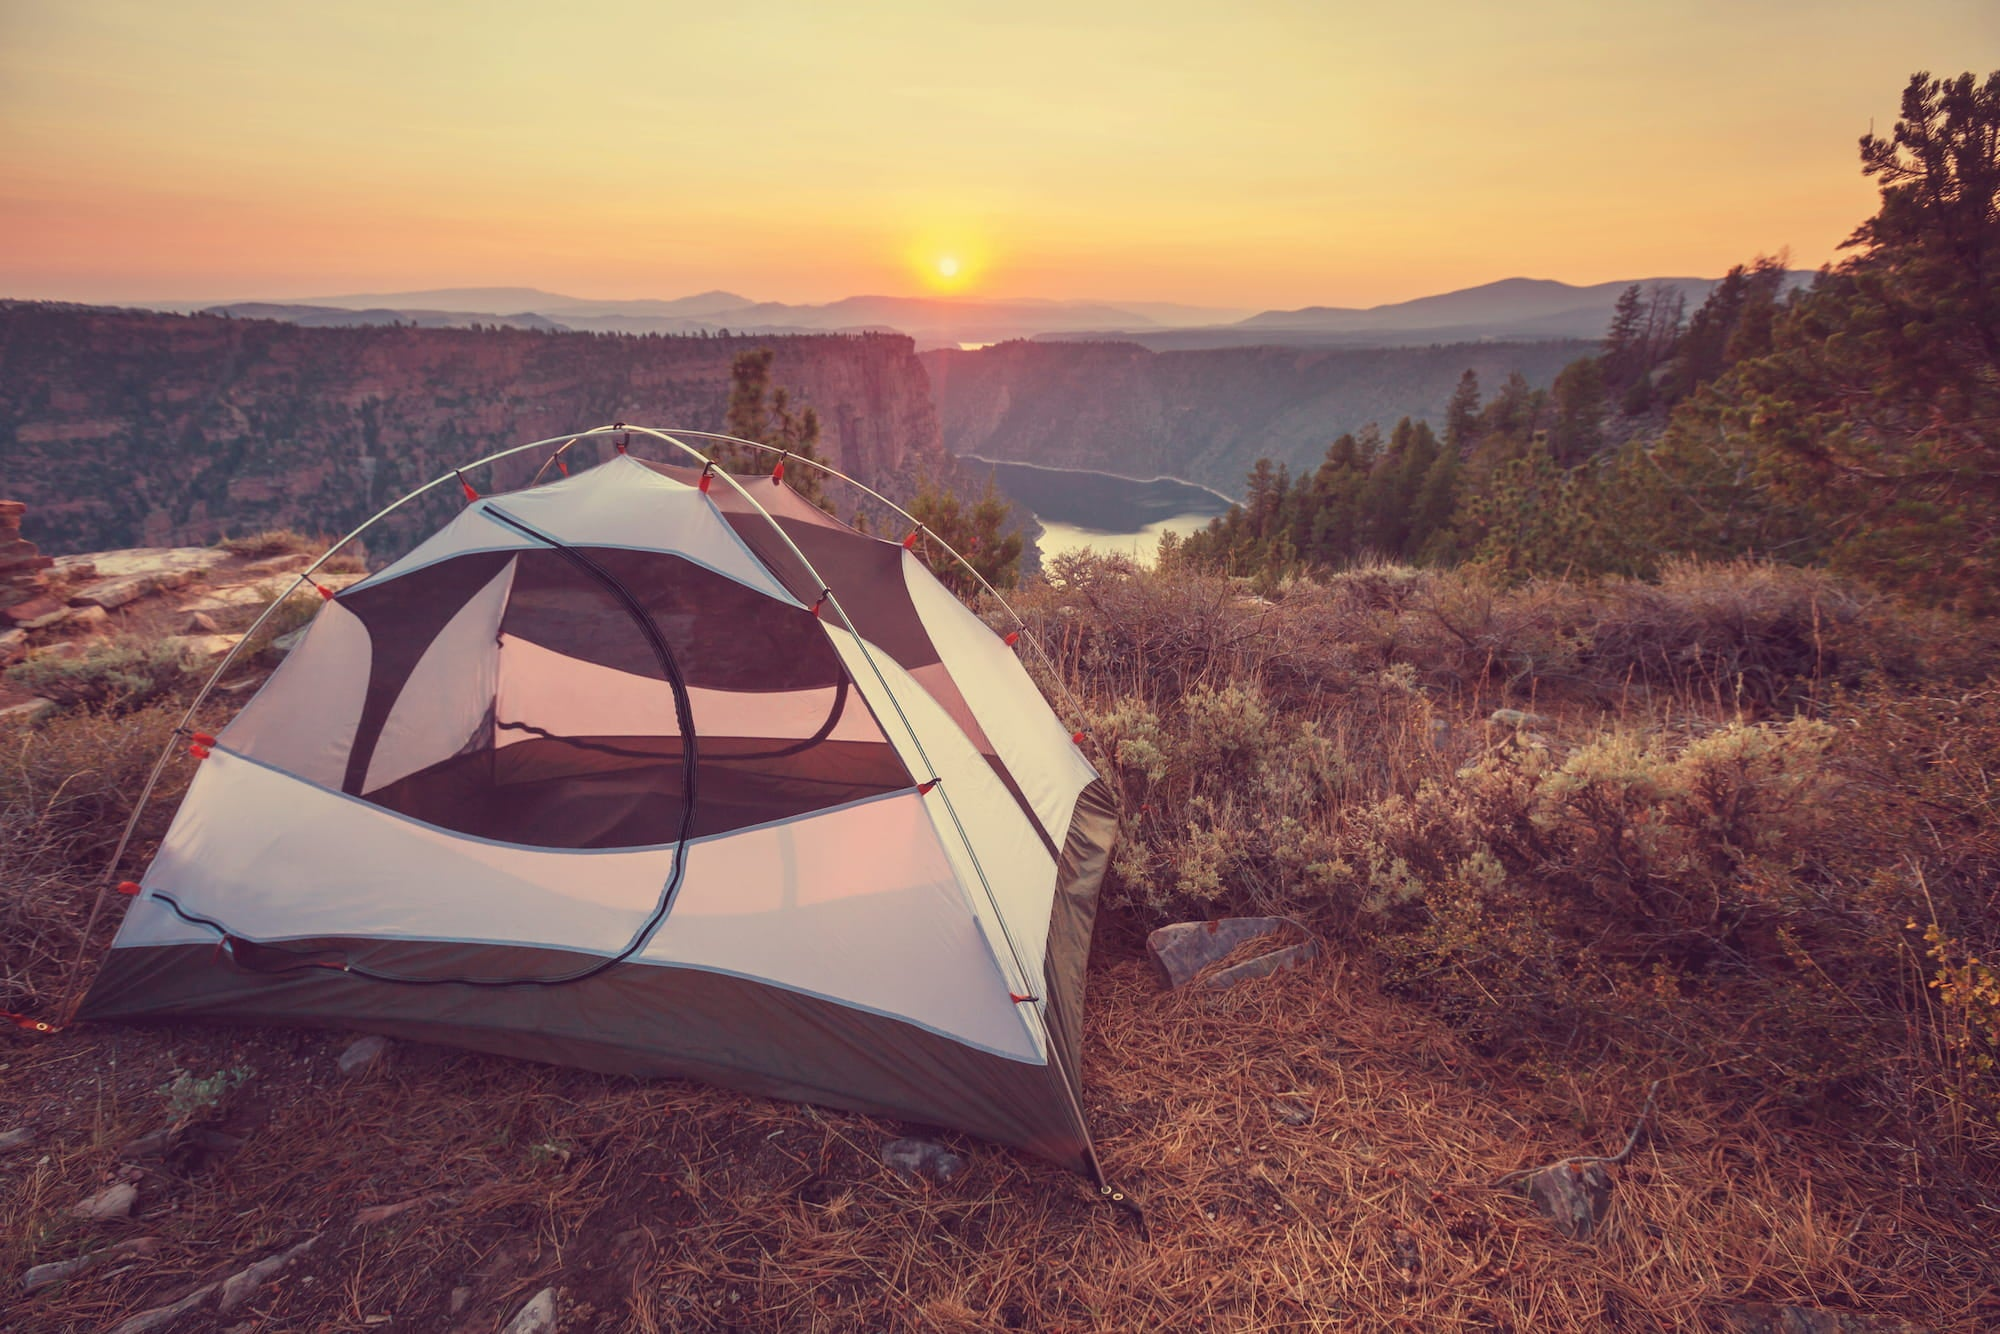 Tent setup on the side of a gorge at dusk.